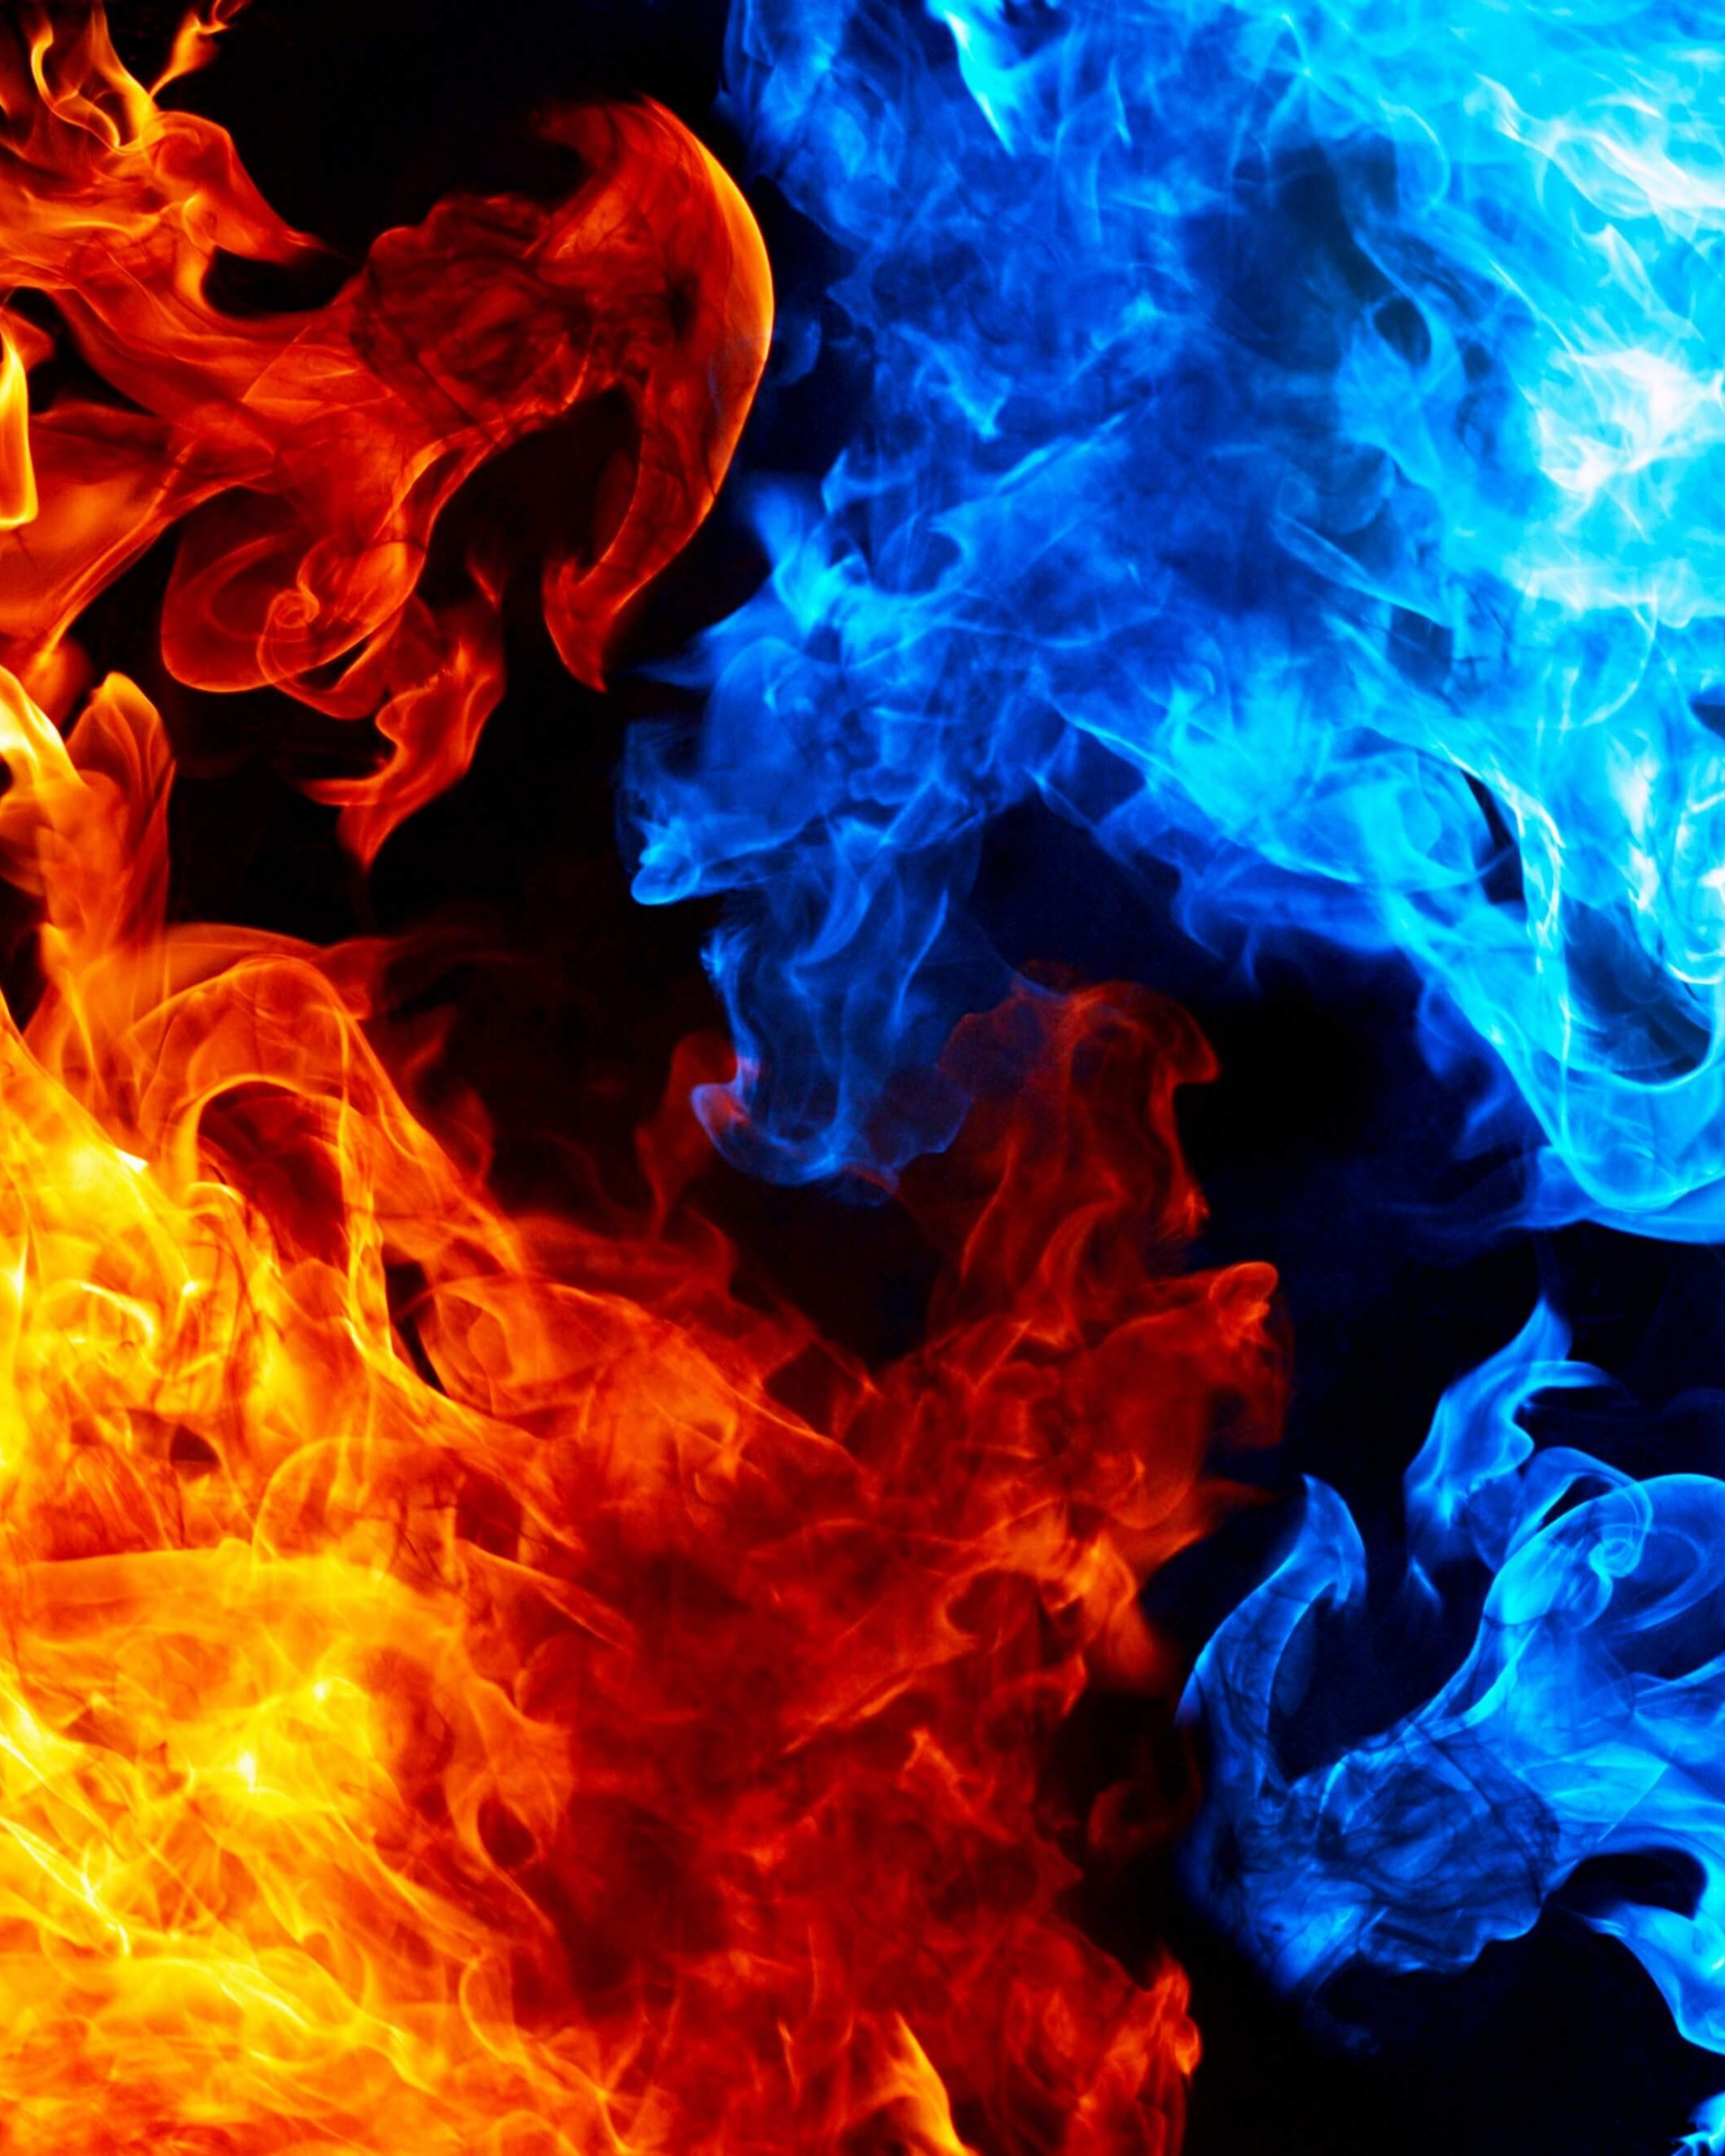 Blue and Red Fire Wallpaper - WallpaperSafari